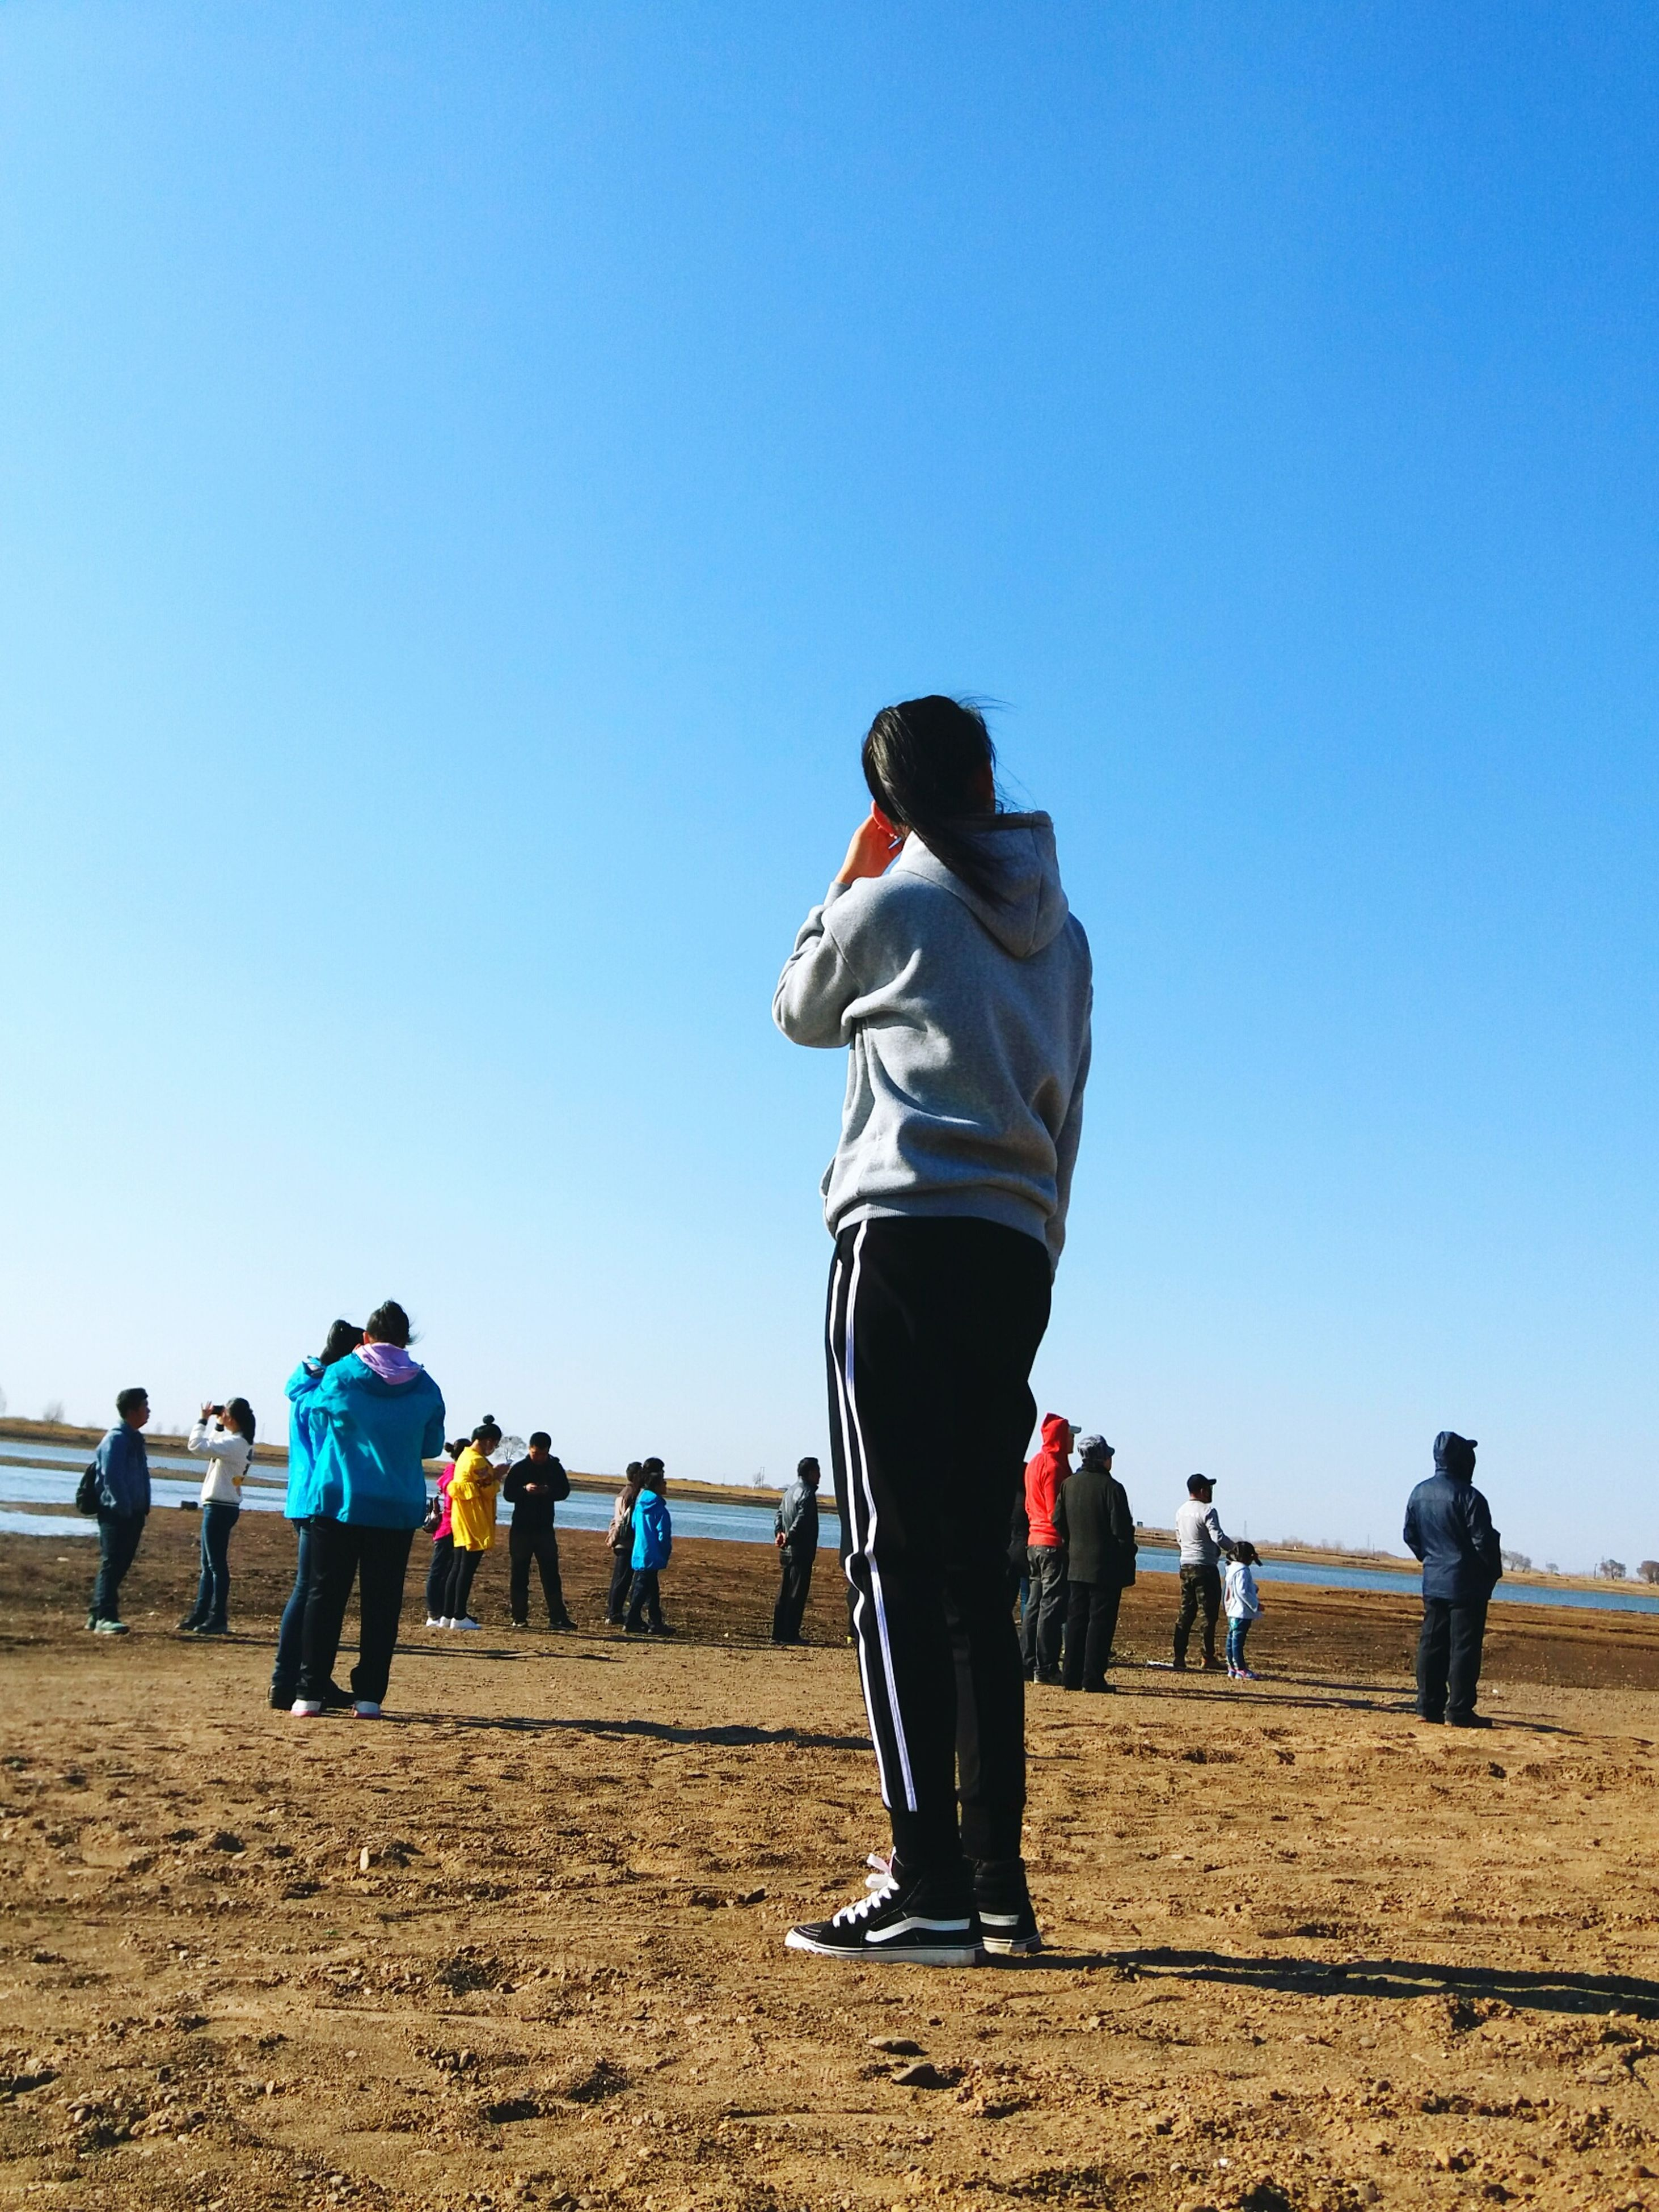 clear sky, real people, blue, leisure activity, lifestyles, outdoors, men, sport, day, sky, low angle view, adults only, beach, people, togetherness, adult, only men